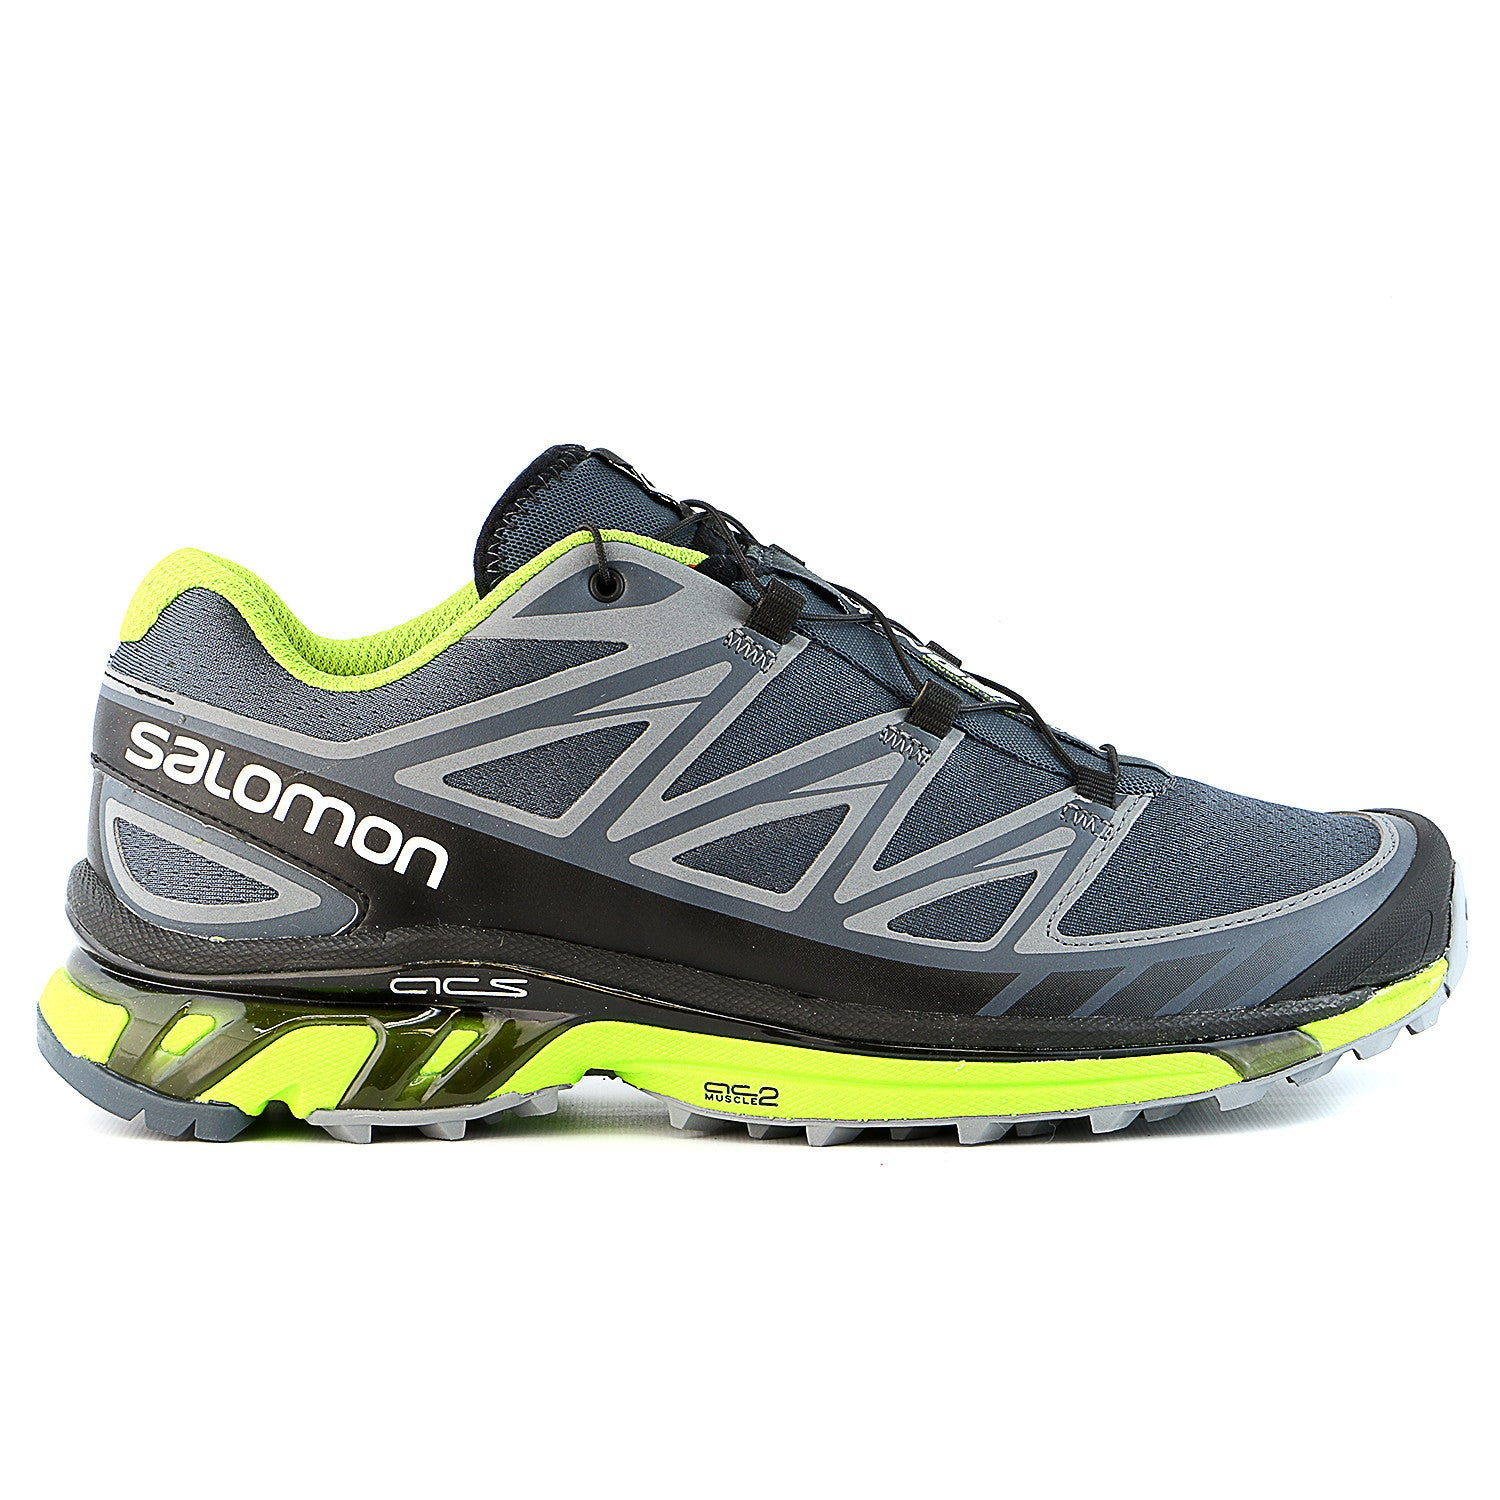 size 40 3d764 67db4 Salomon Wings Pro Trail Running Sneaker Shoe - Mens